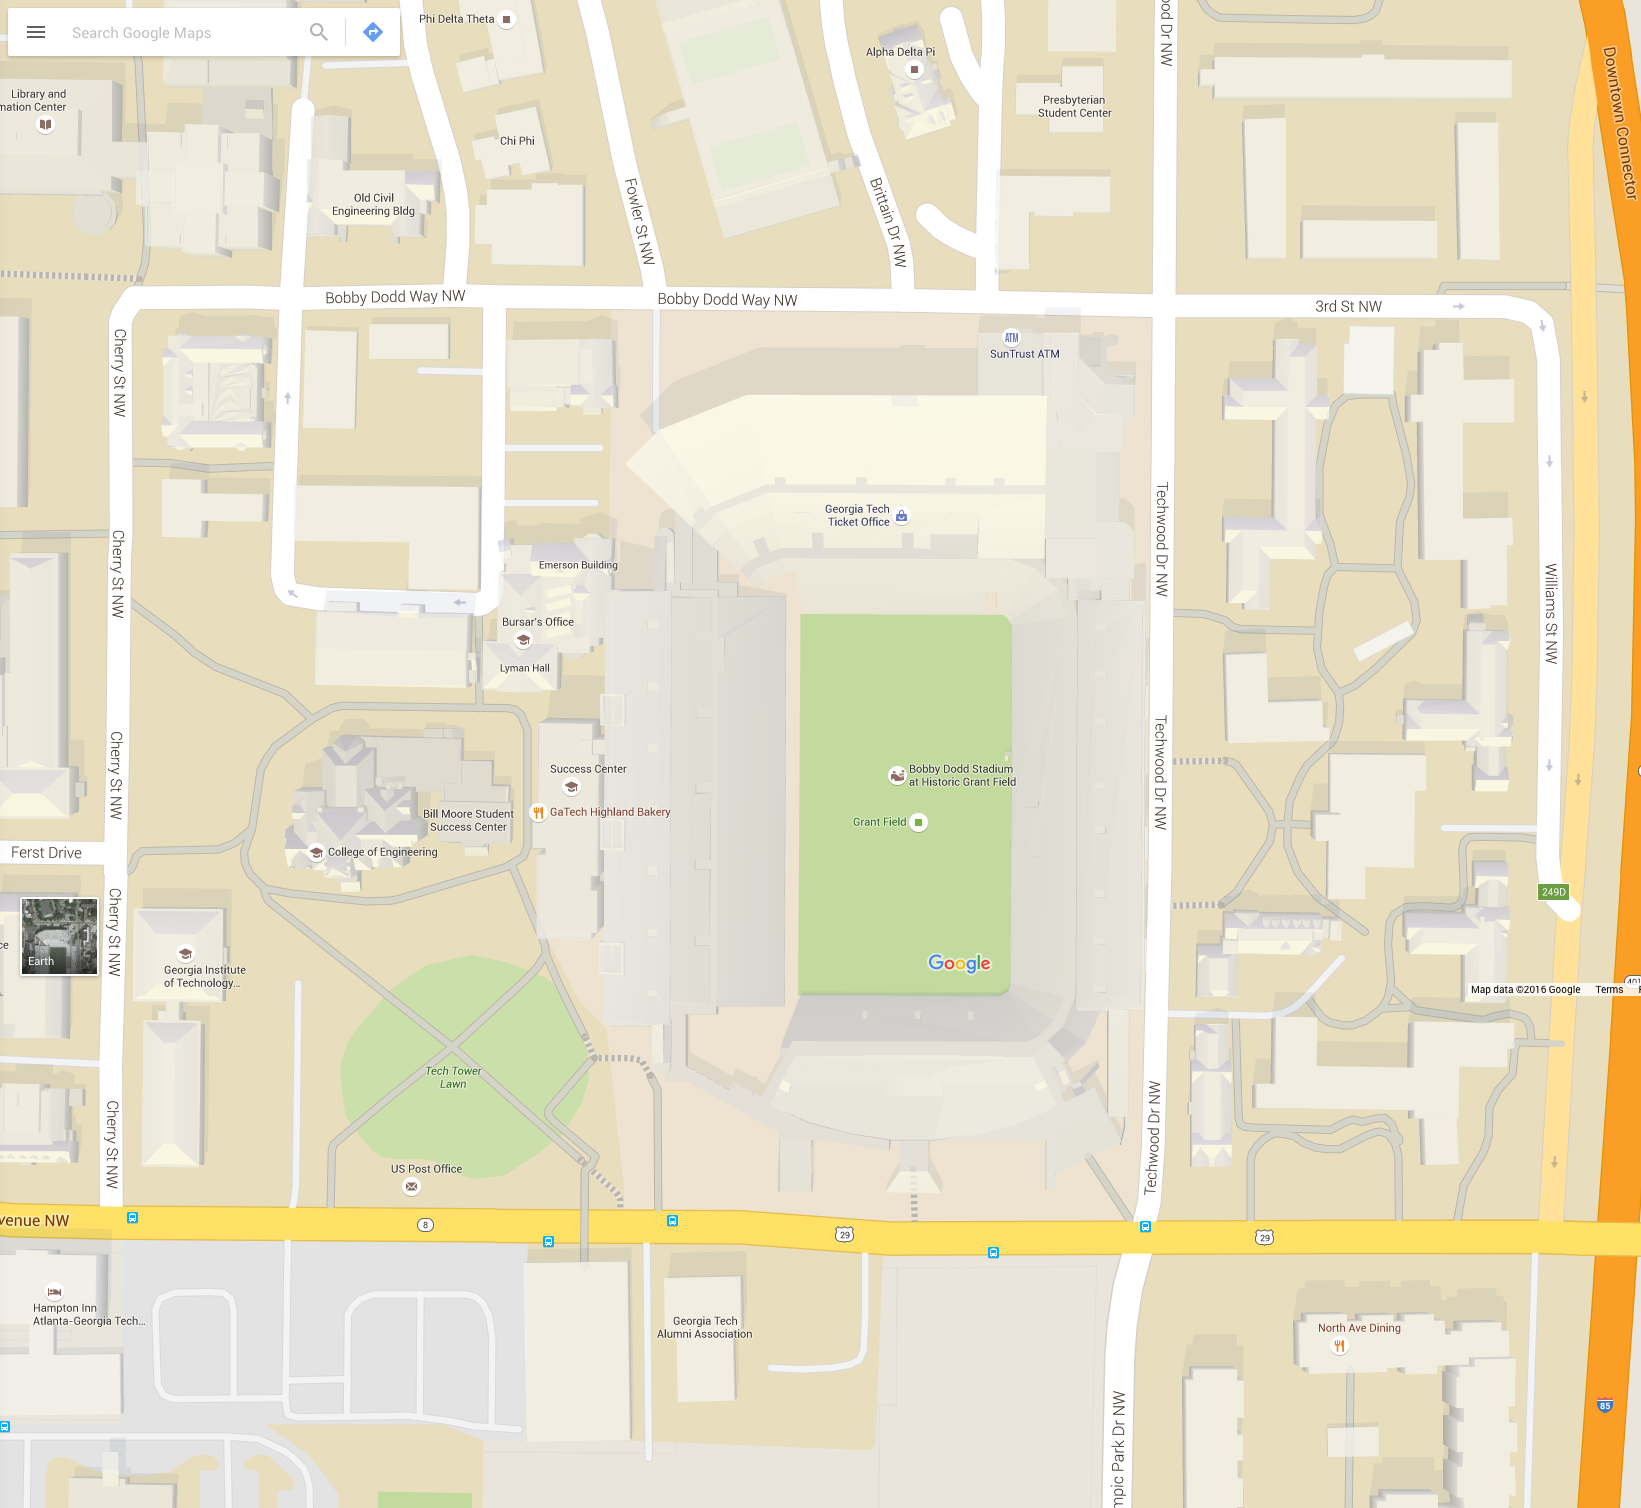 Google Maps view of Bobby-Dodd.